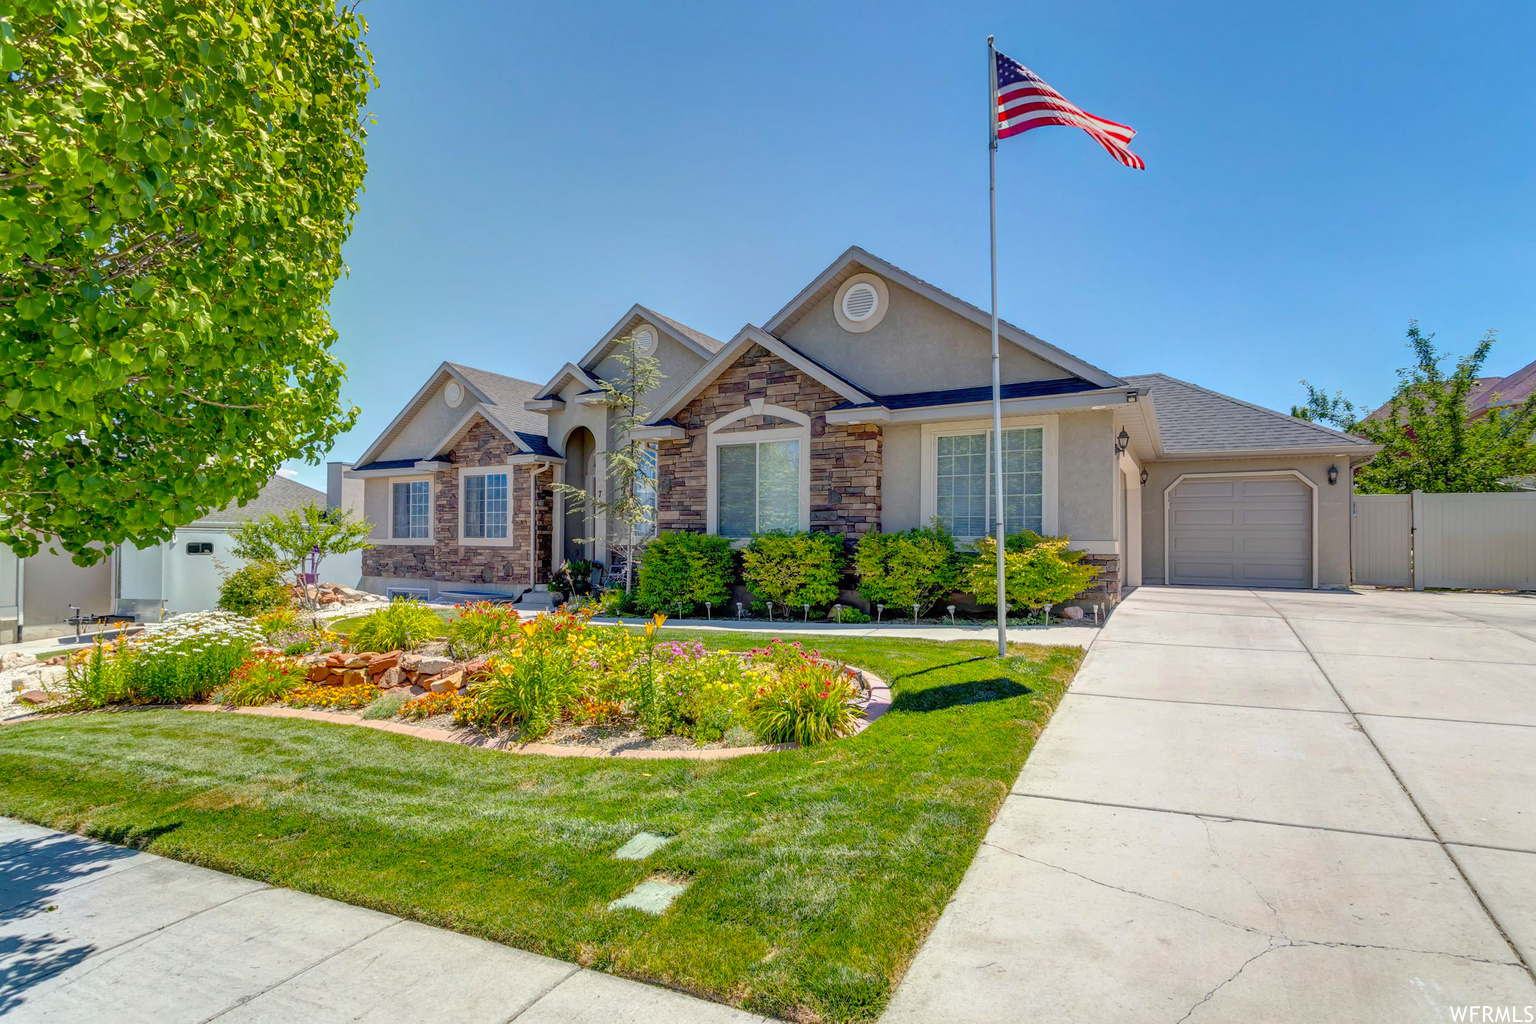 73 E FAIRWAY BLVD, Saratoga Springs UT 84045